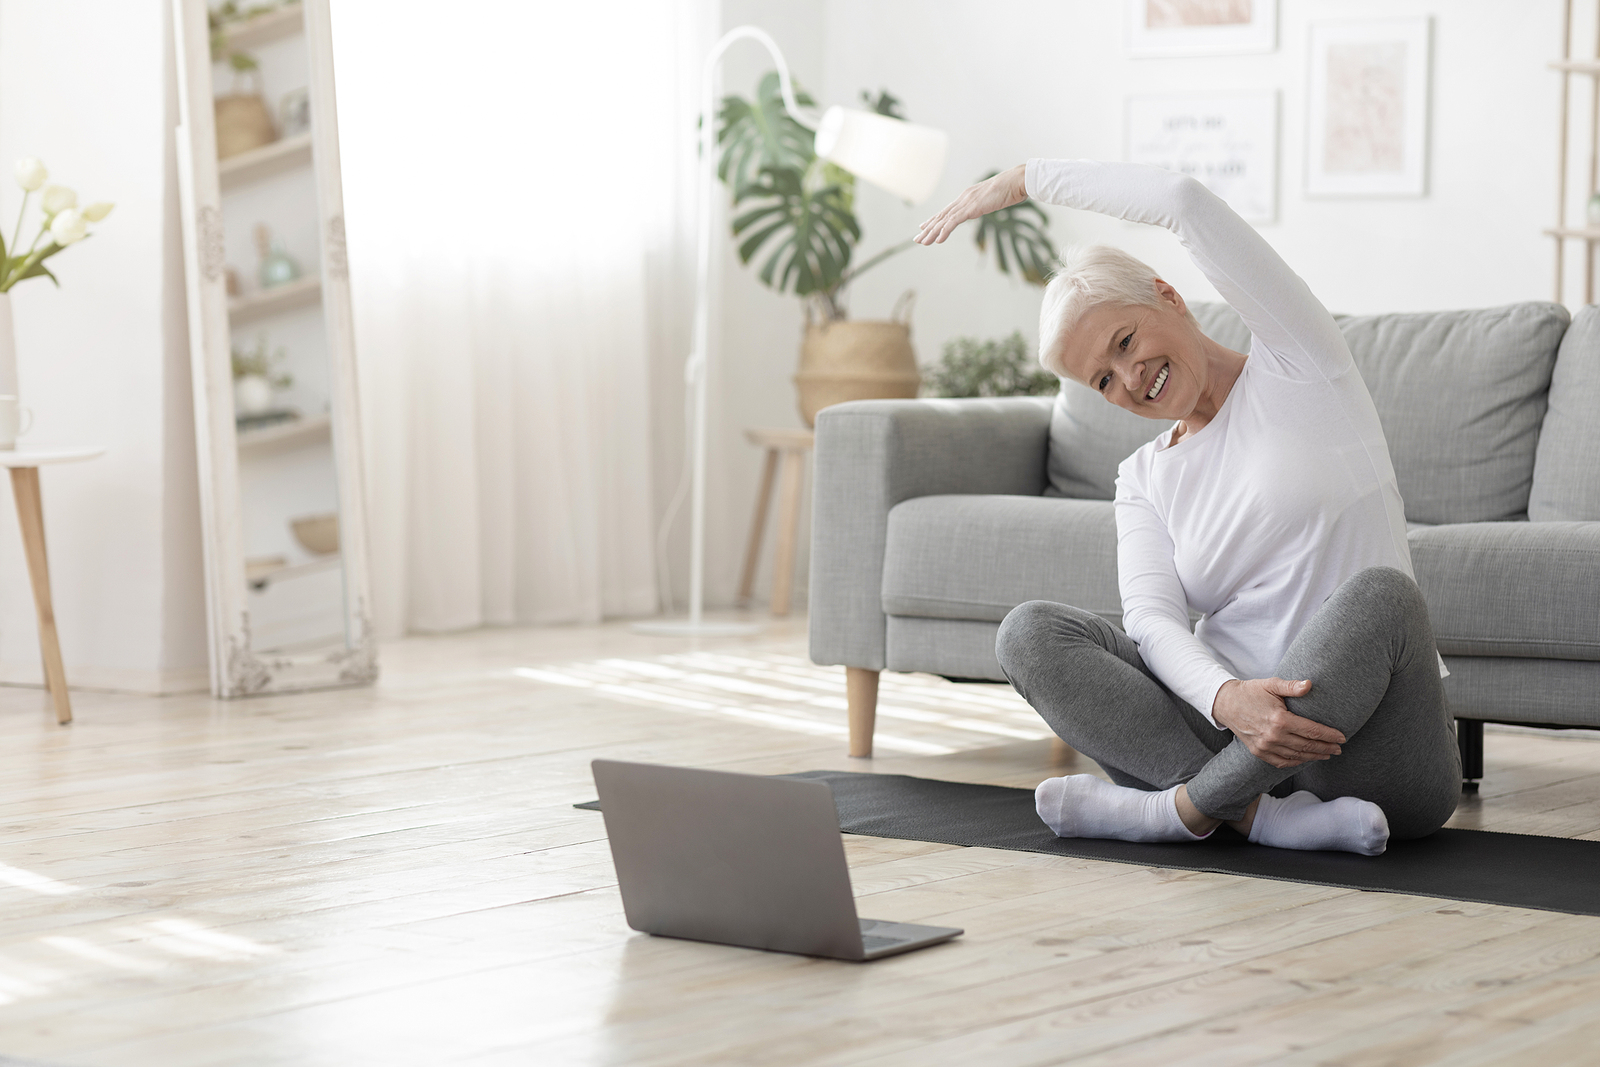 Woman doing pilates exercise at home